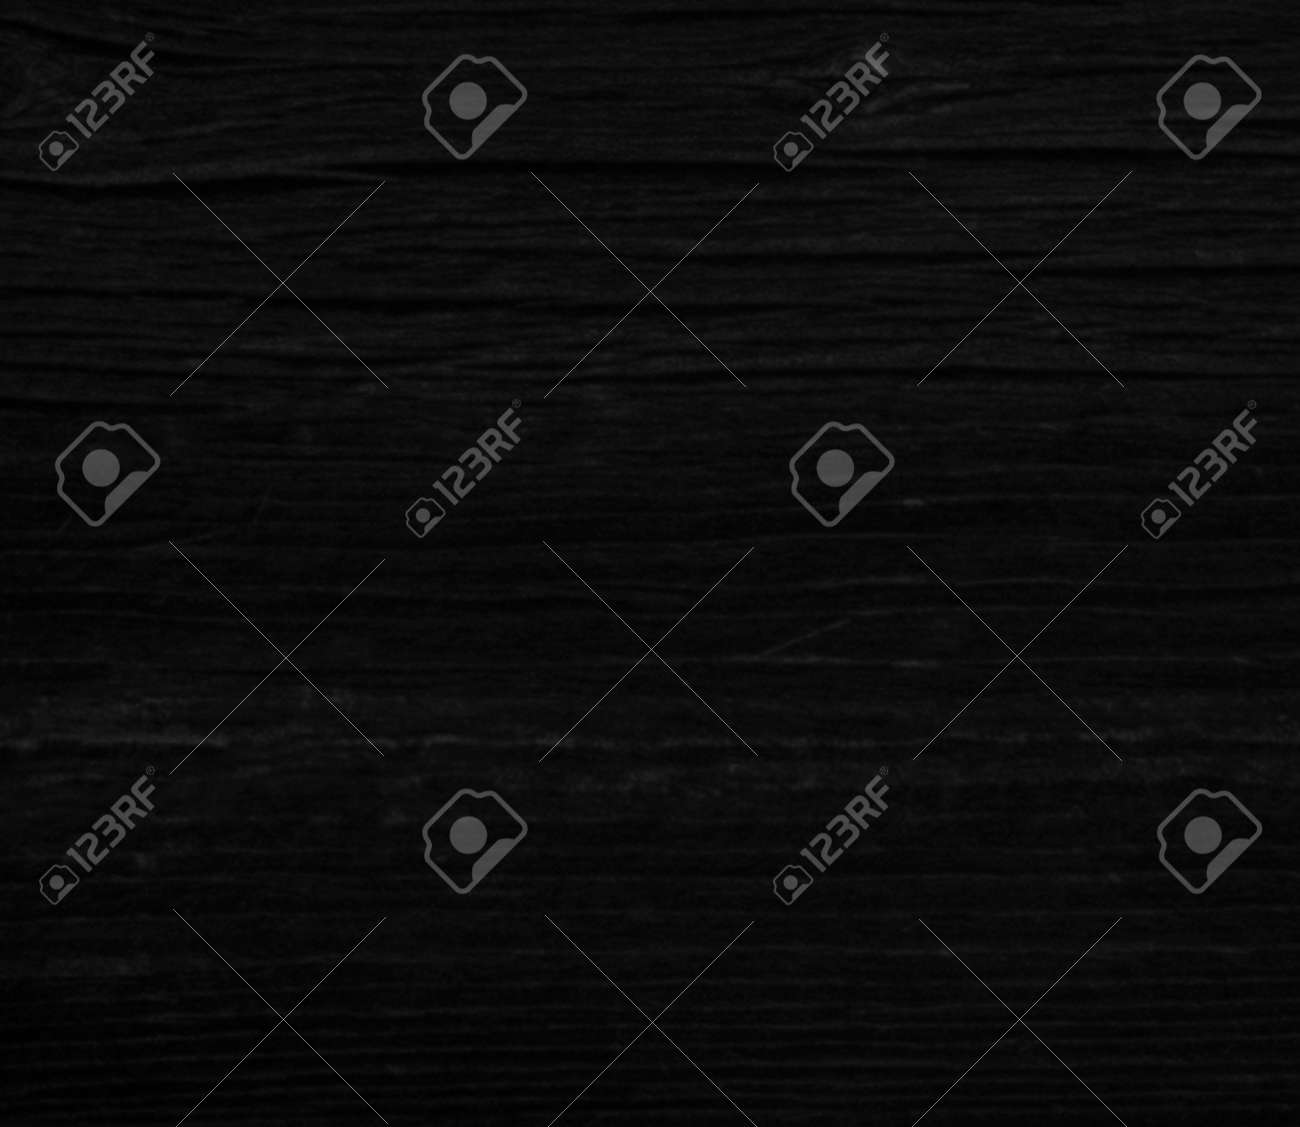 BLACK GRAY TEXTURE BACKGROUND FOR GRAPHIC DESIGN AND WEB DESIGN - 144313885